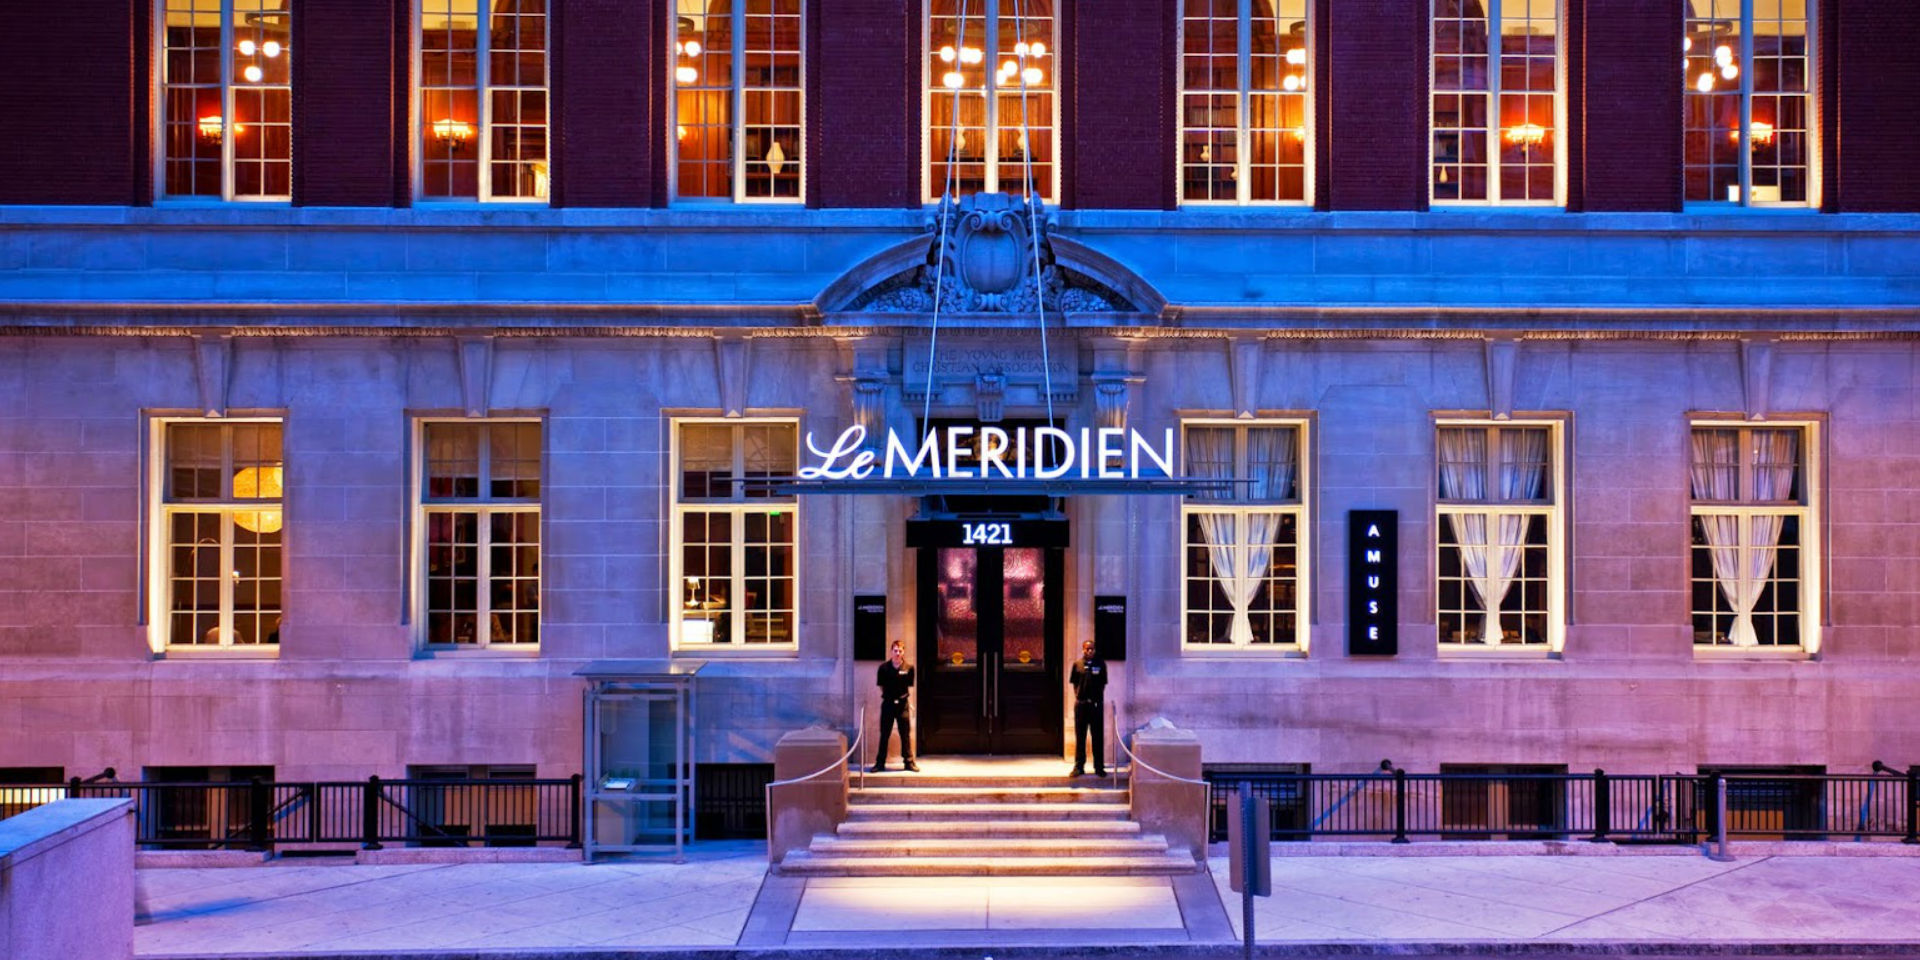 Le Meridien Seoul slated to open in September 2017